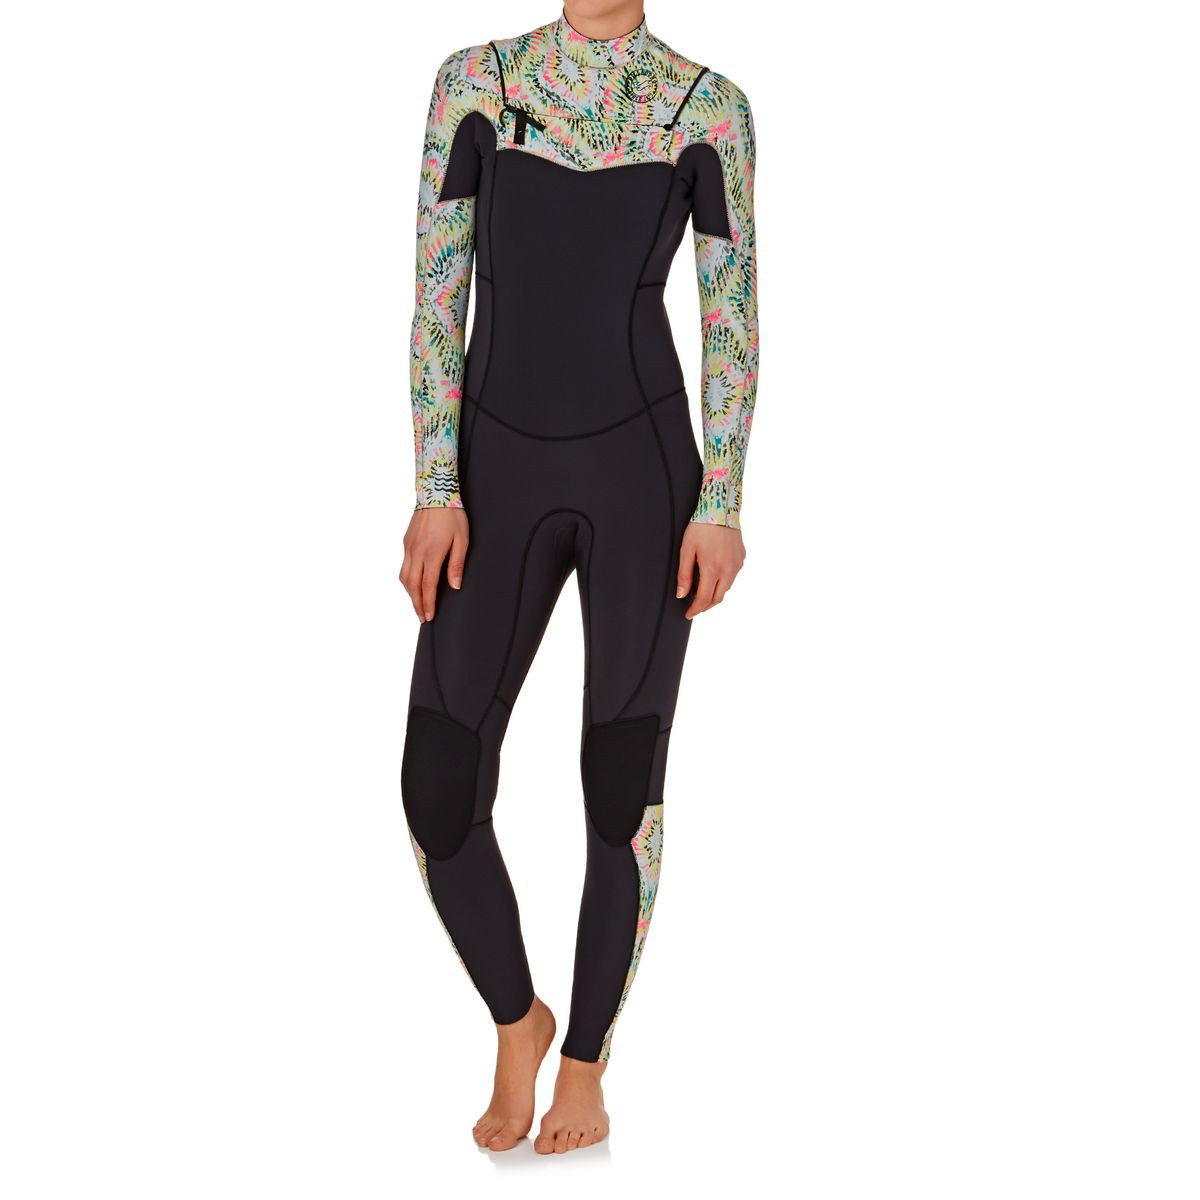 Billabong Womens Surf Capsule Salty Dayz 3/2mm 2017 Chest Zip Wetsuit - Aloe